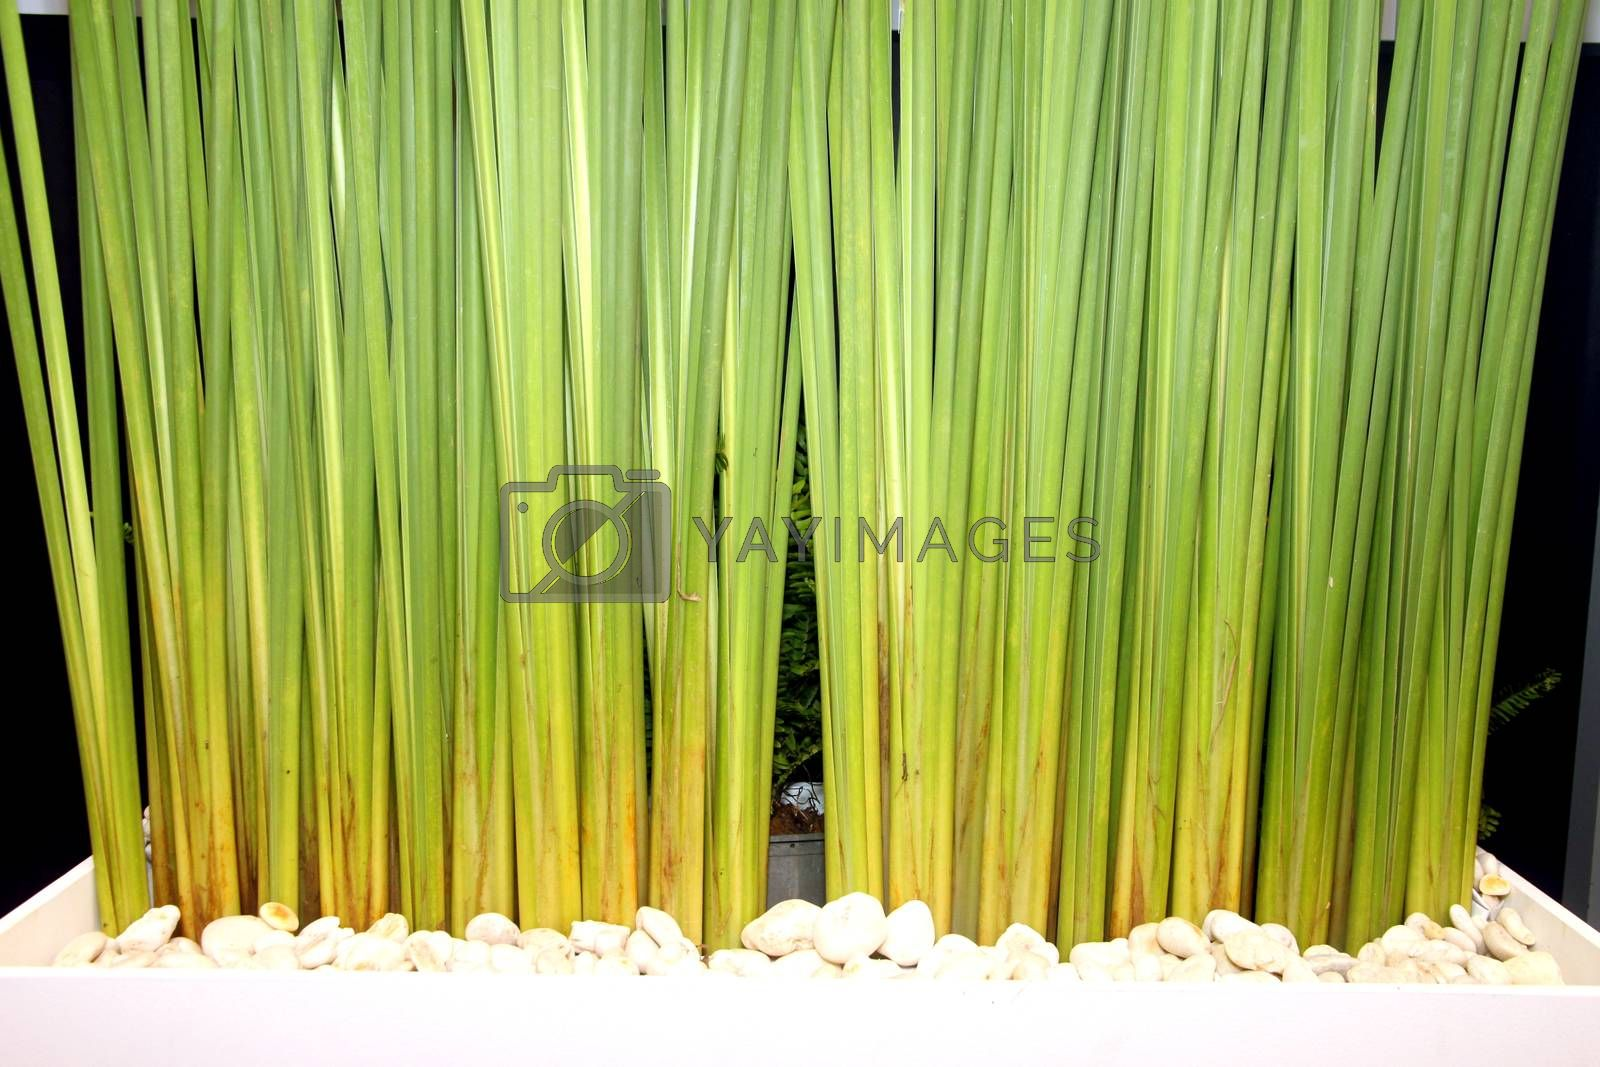 The Picture Stems of green plants.